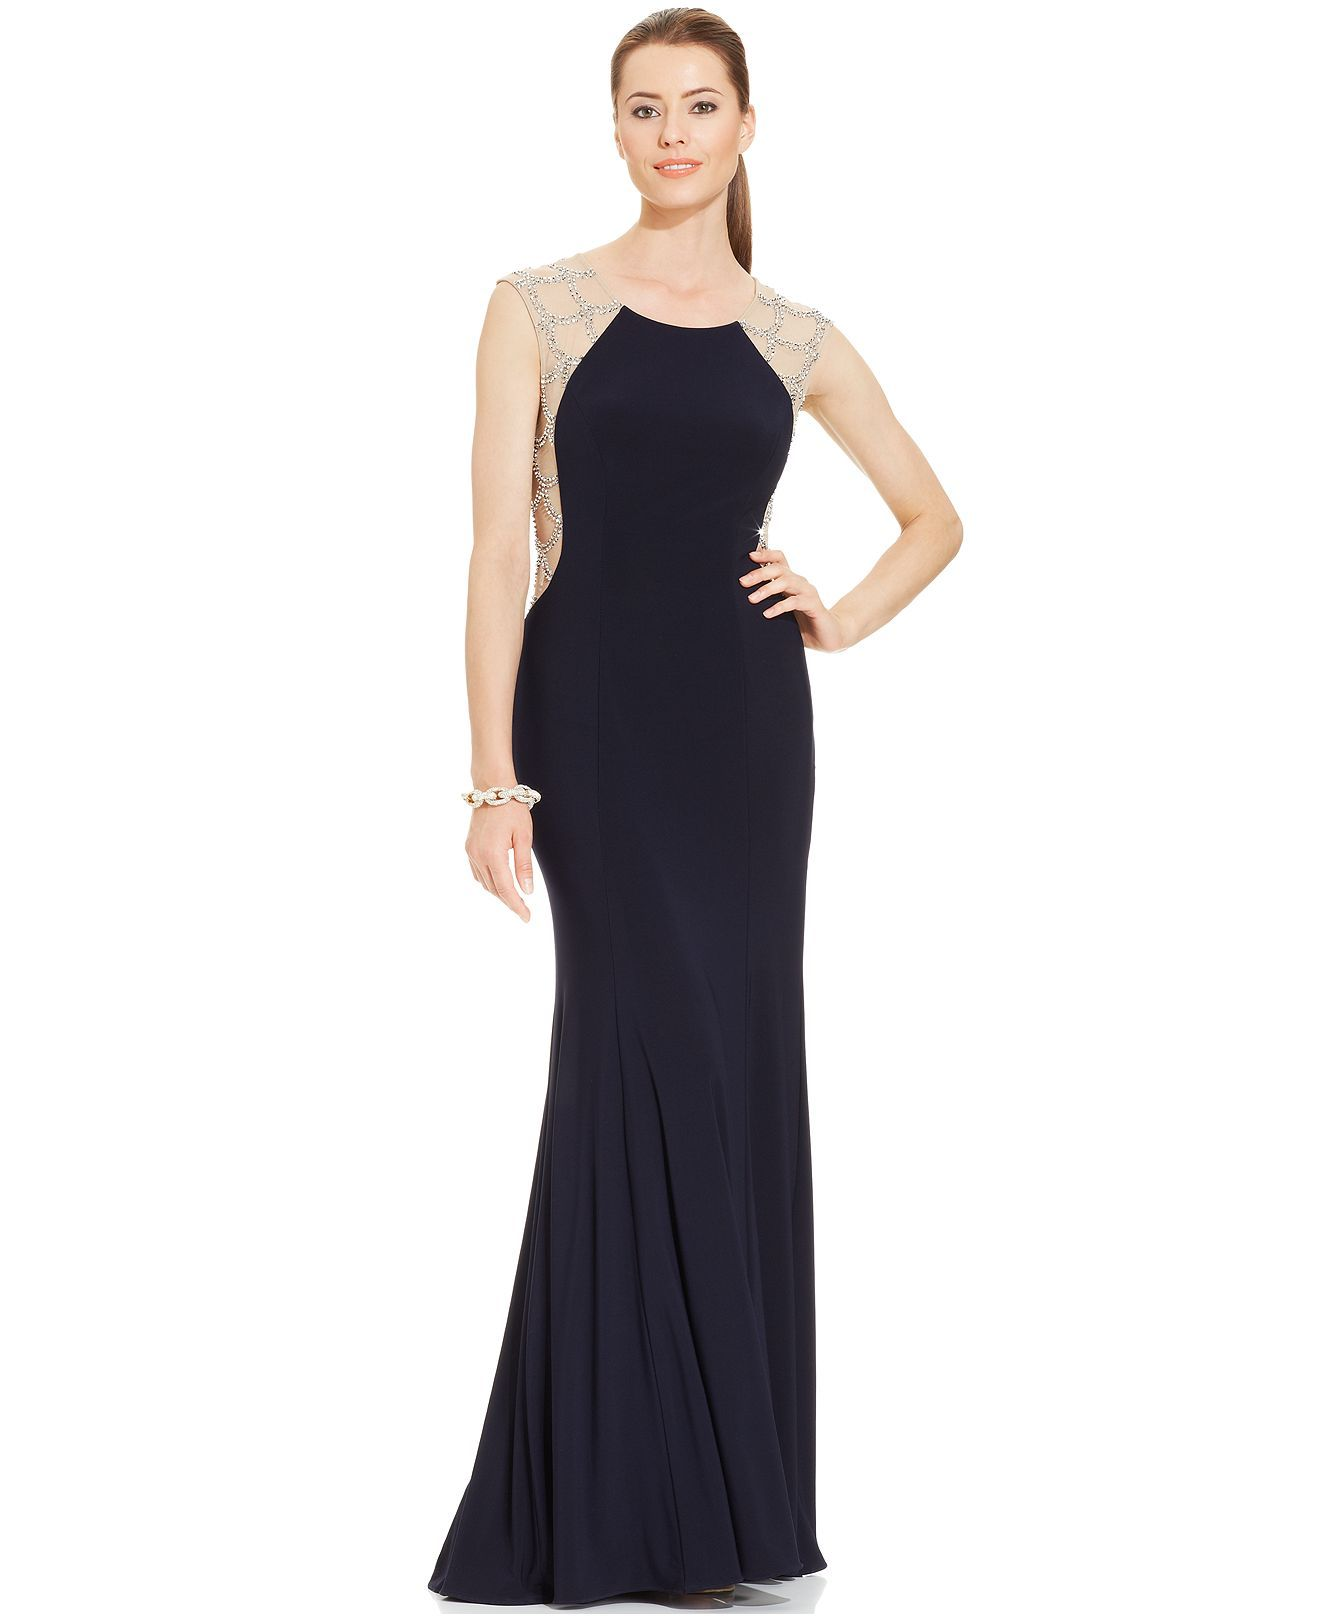 Xscape capsleeve scalloped jewelback gown dresses women